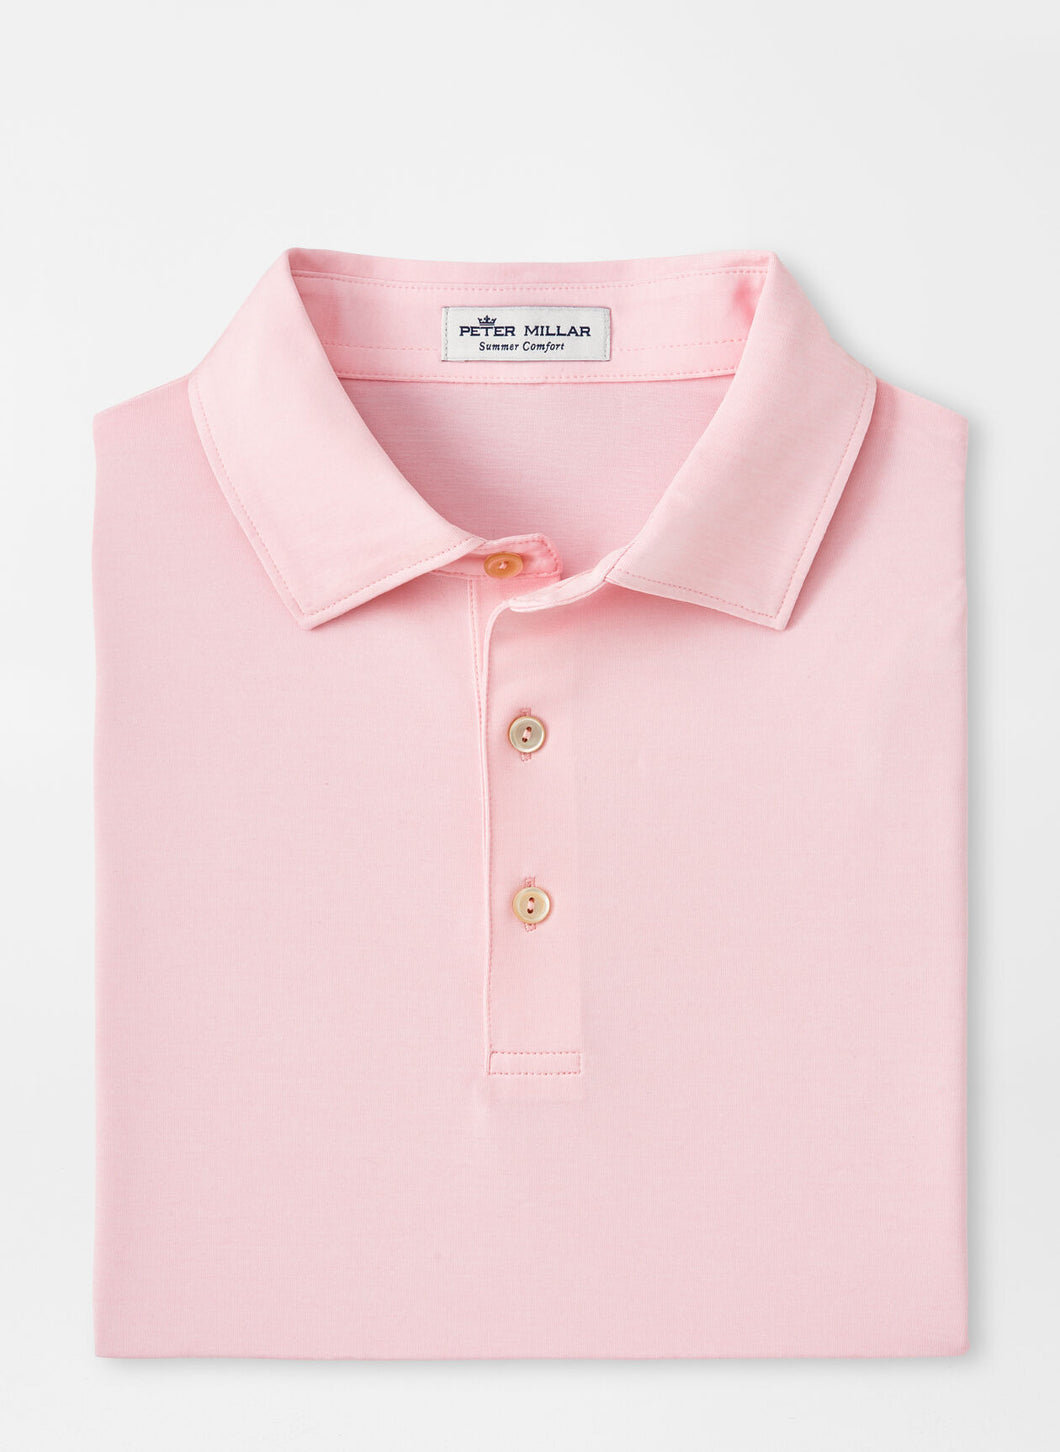 Peter Millar Solid Performance Polo in Palmer Pink